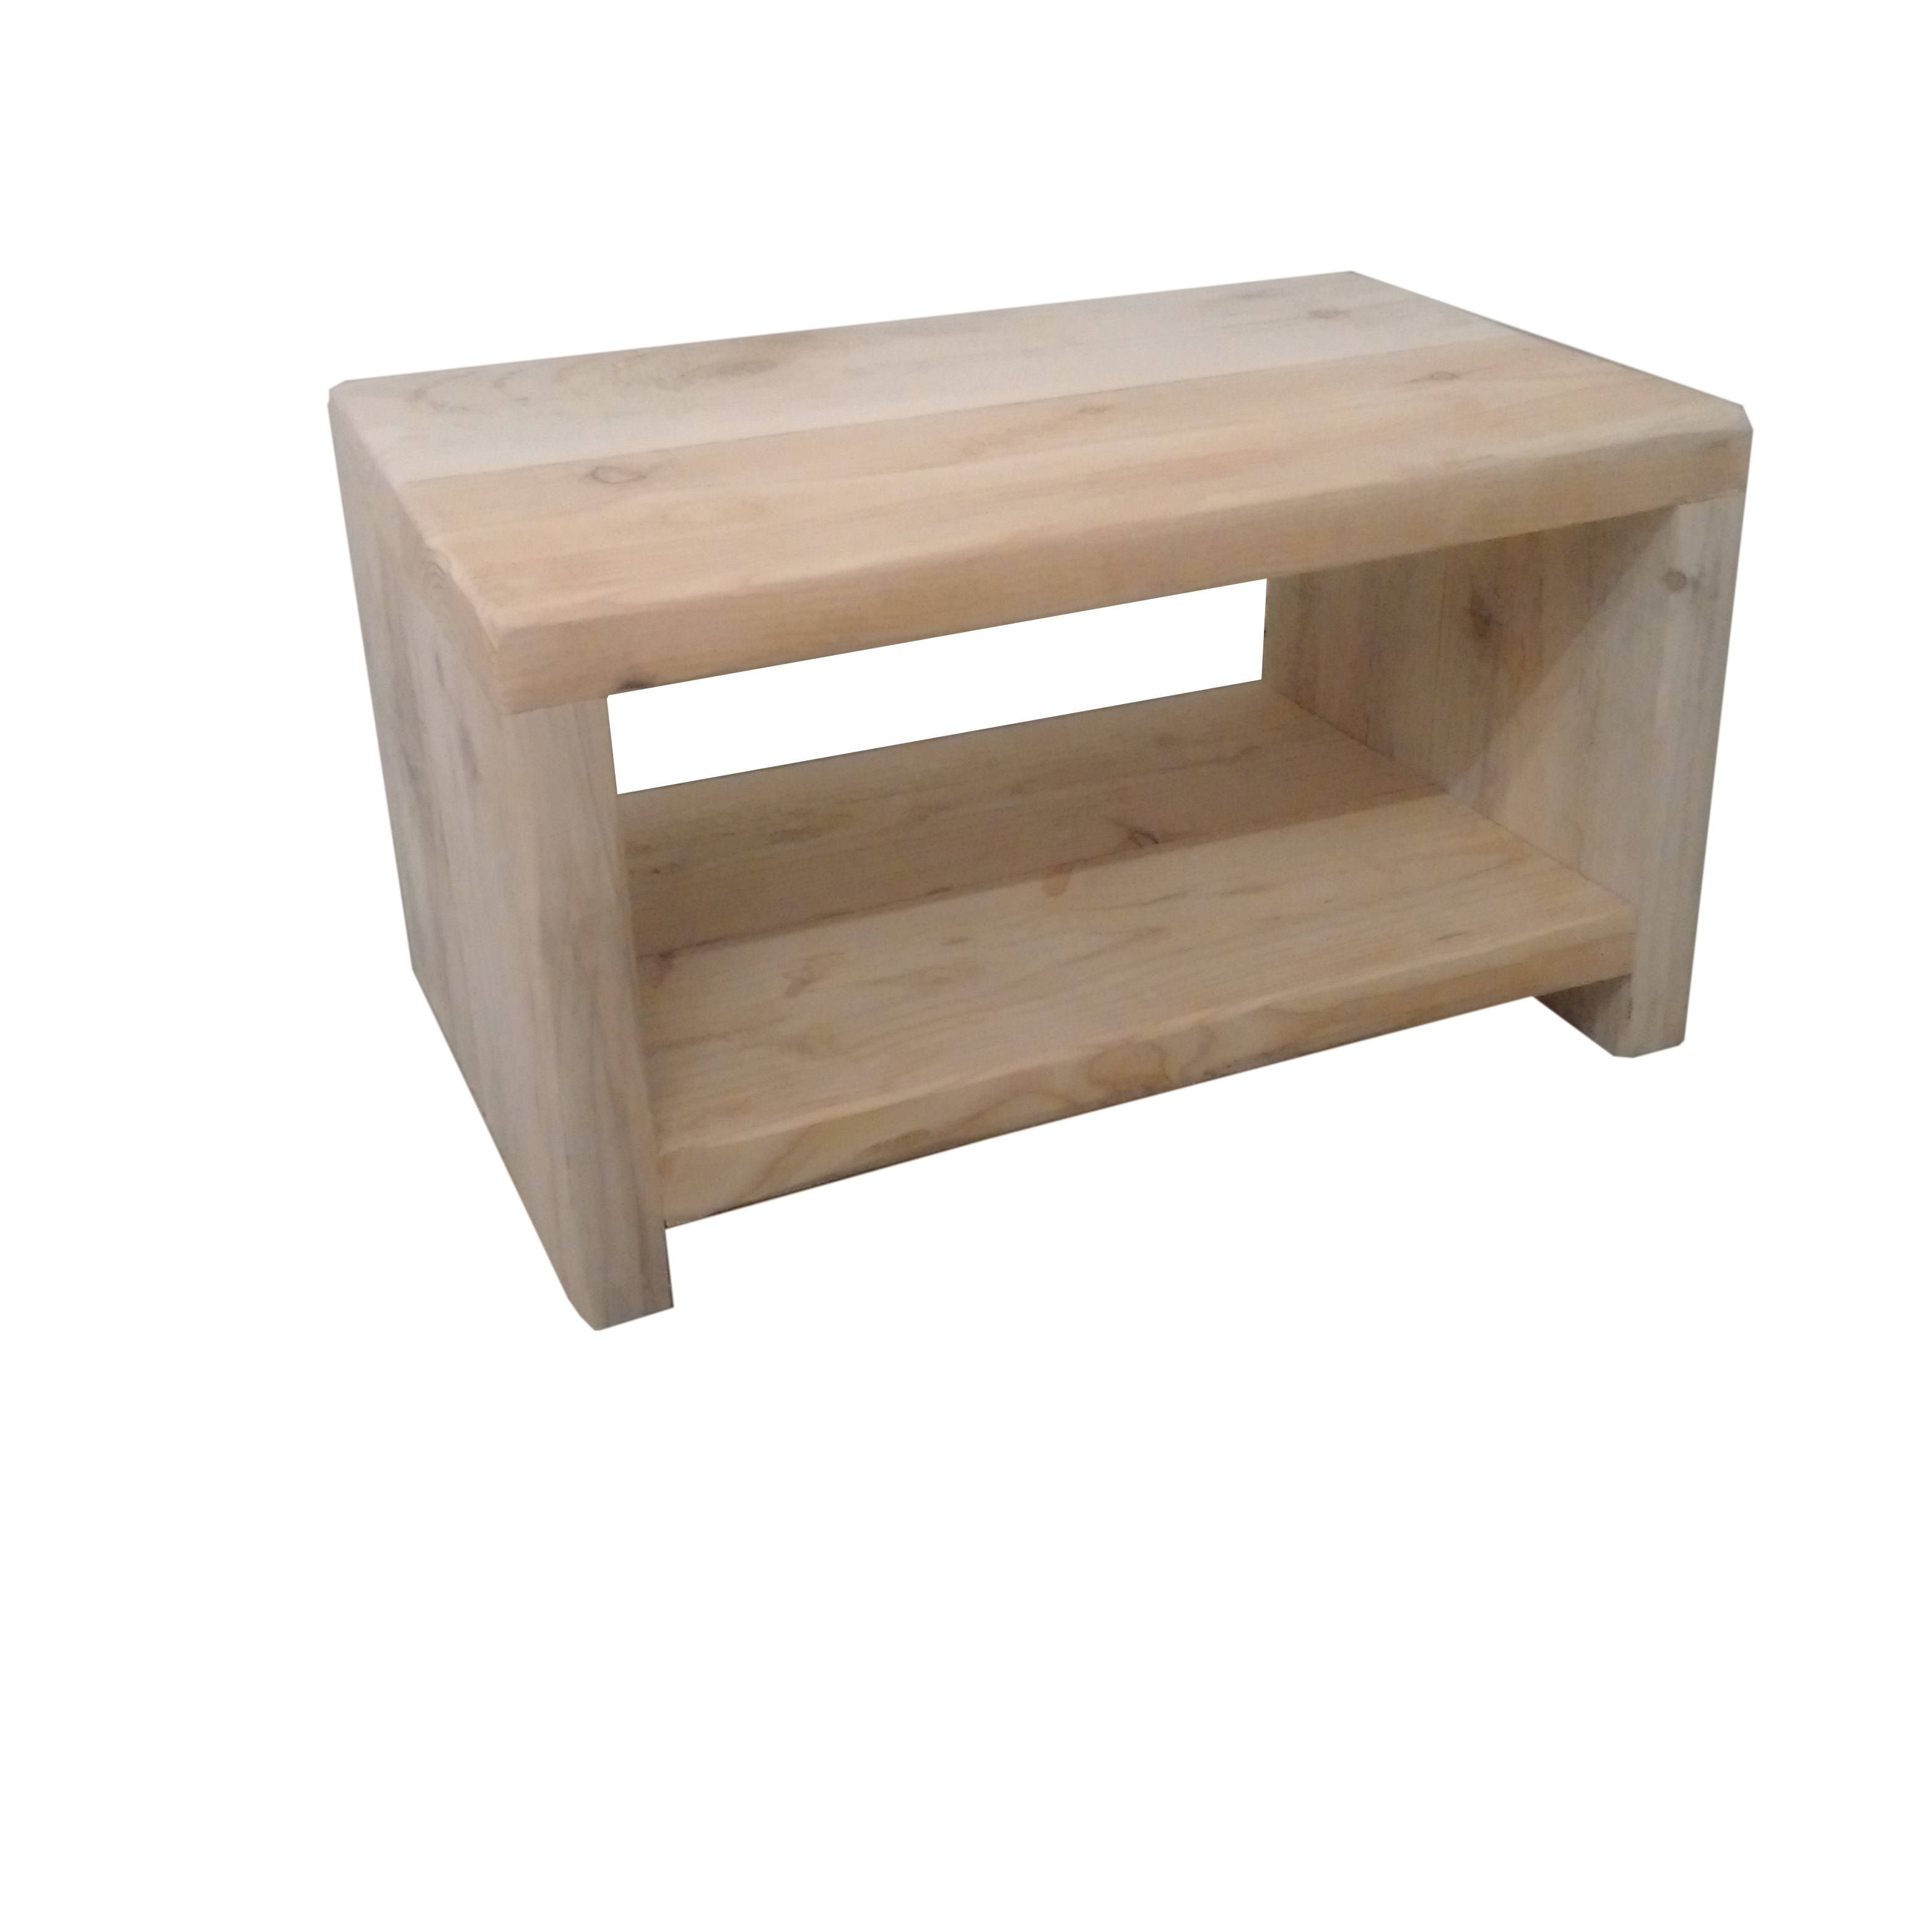 Clearance sale ely rustic furniture for Clearance furniture